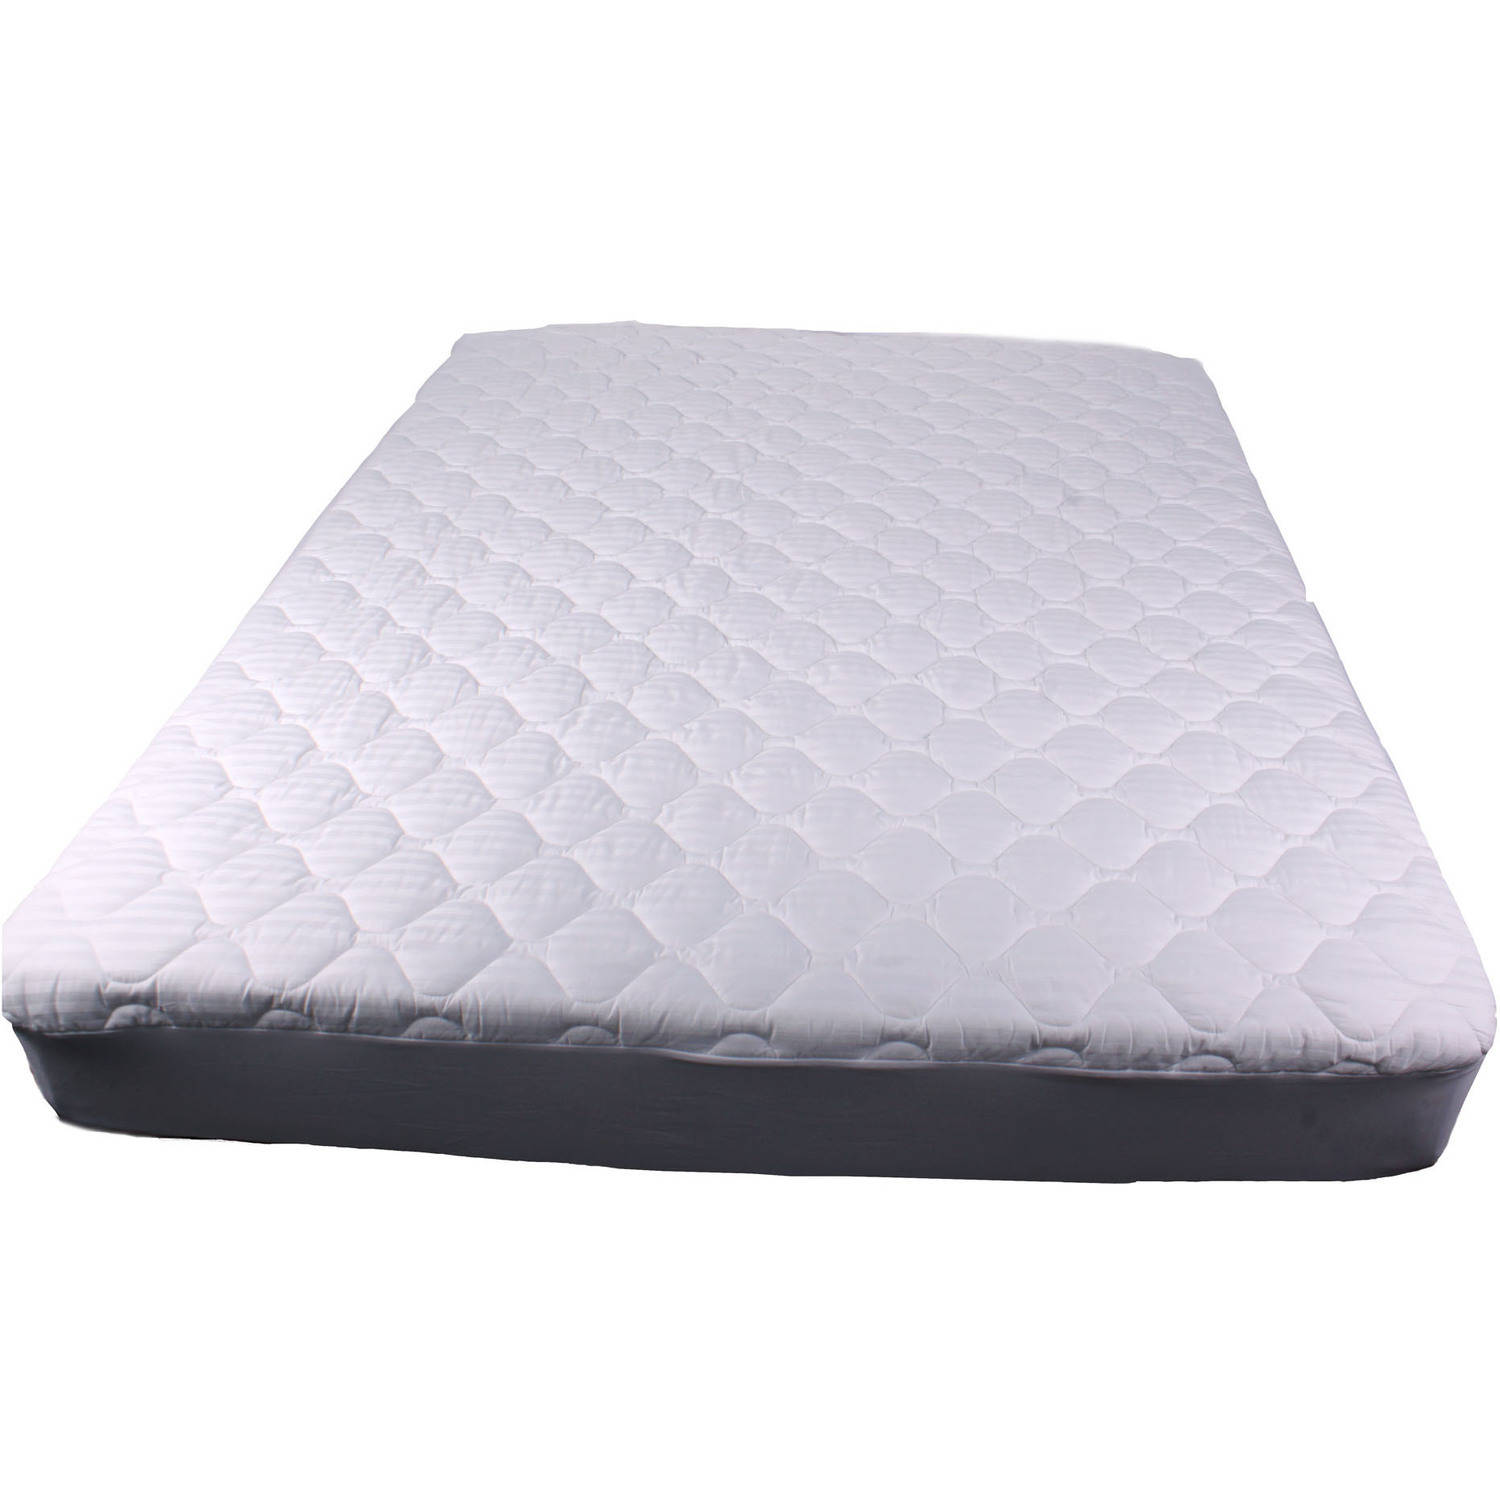 - Quiet Comfort Waterproof Mattress Pad - Walmart.com